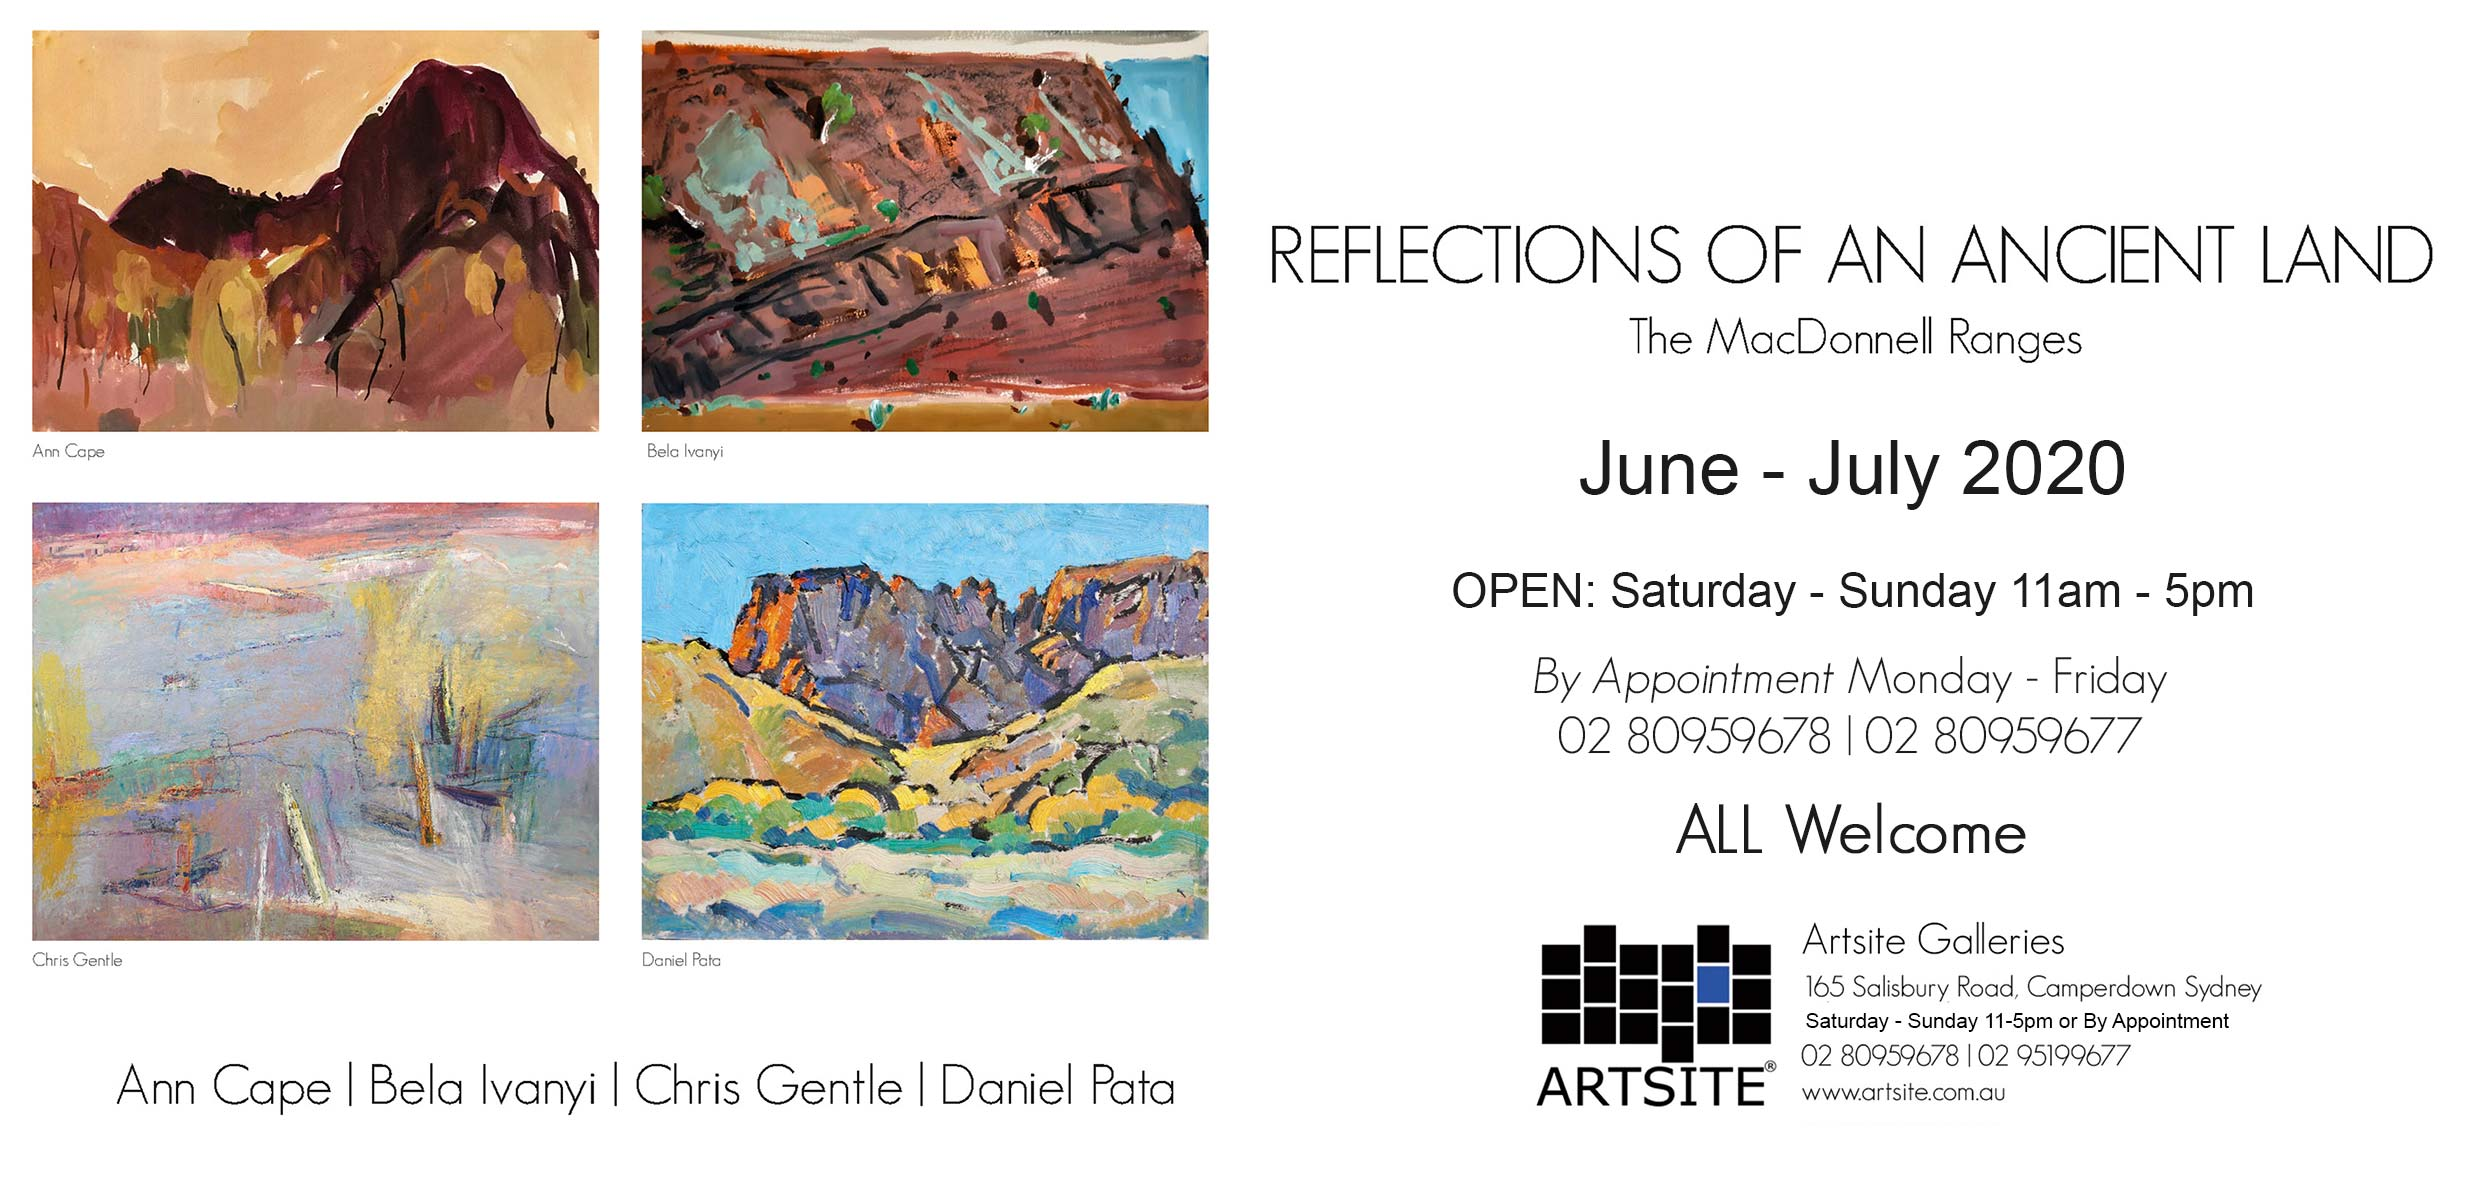 Artsite Galleries Exhibition | REFLECTIONS OF AN ANCIENT LAND: The MacDonnell Ranges | Ann Cape | Bela Ivanyi | Chris Gentle | Daniel Pata. Exhibition is Open June - July 2020. Saturdays and Sundays 11am - 5pm and By Appointment Monday - Friday.